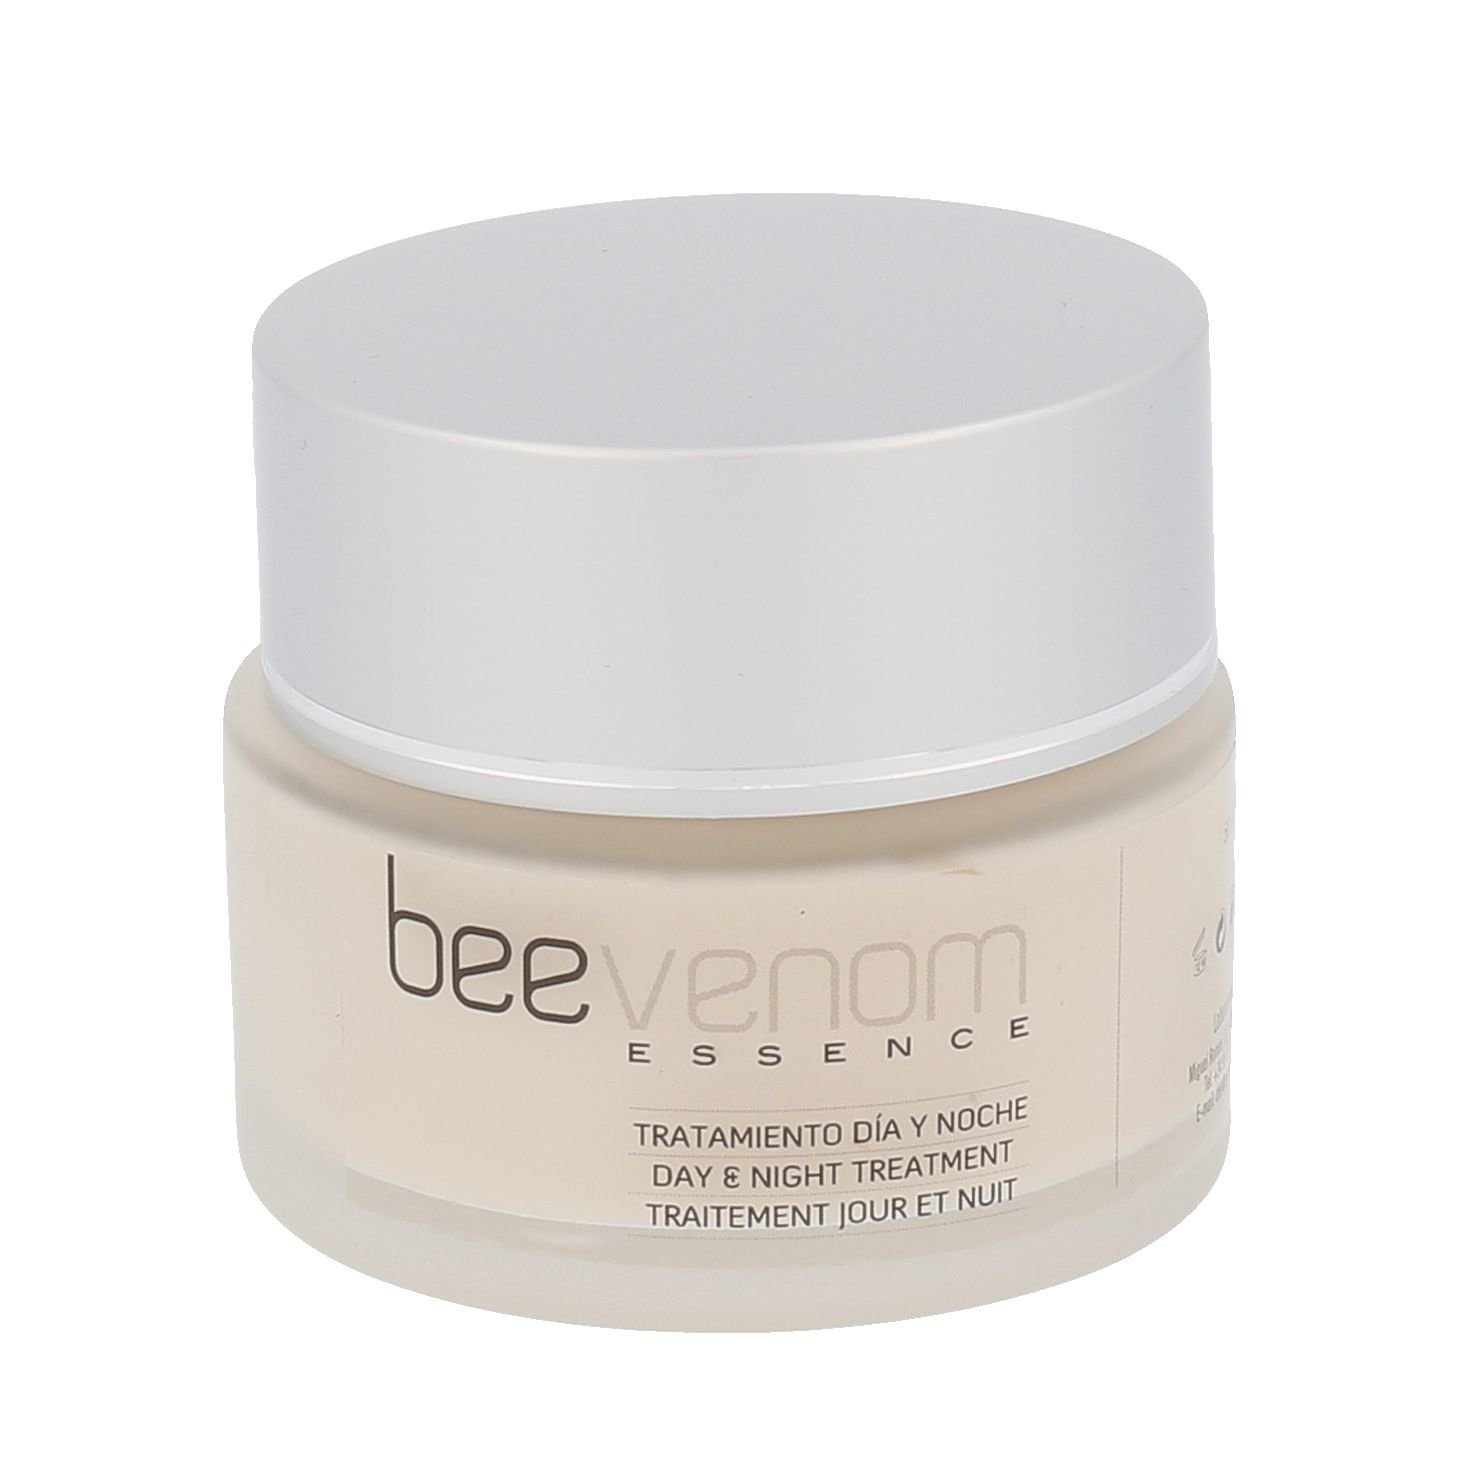 Diet Esthetic Bee Venom Essence Cream